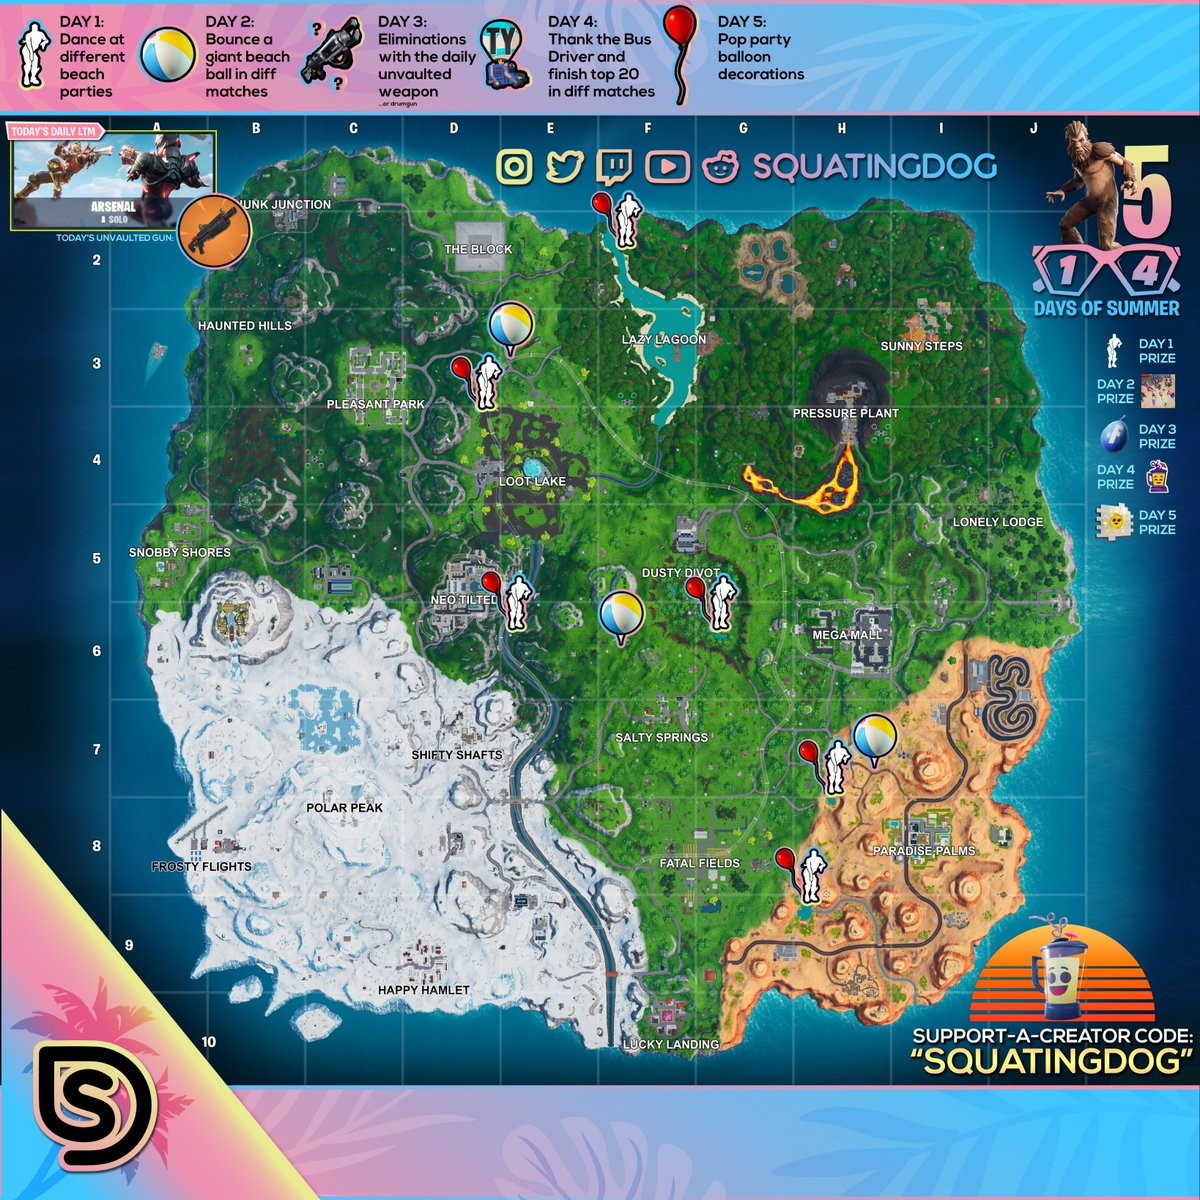 Squatingdog On Twitter Day 5 Of 14 Days Of Summer All